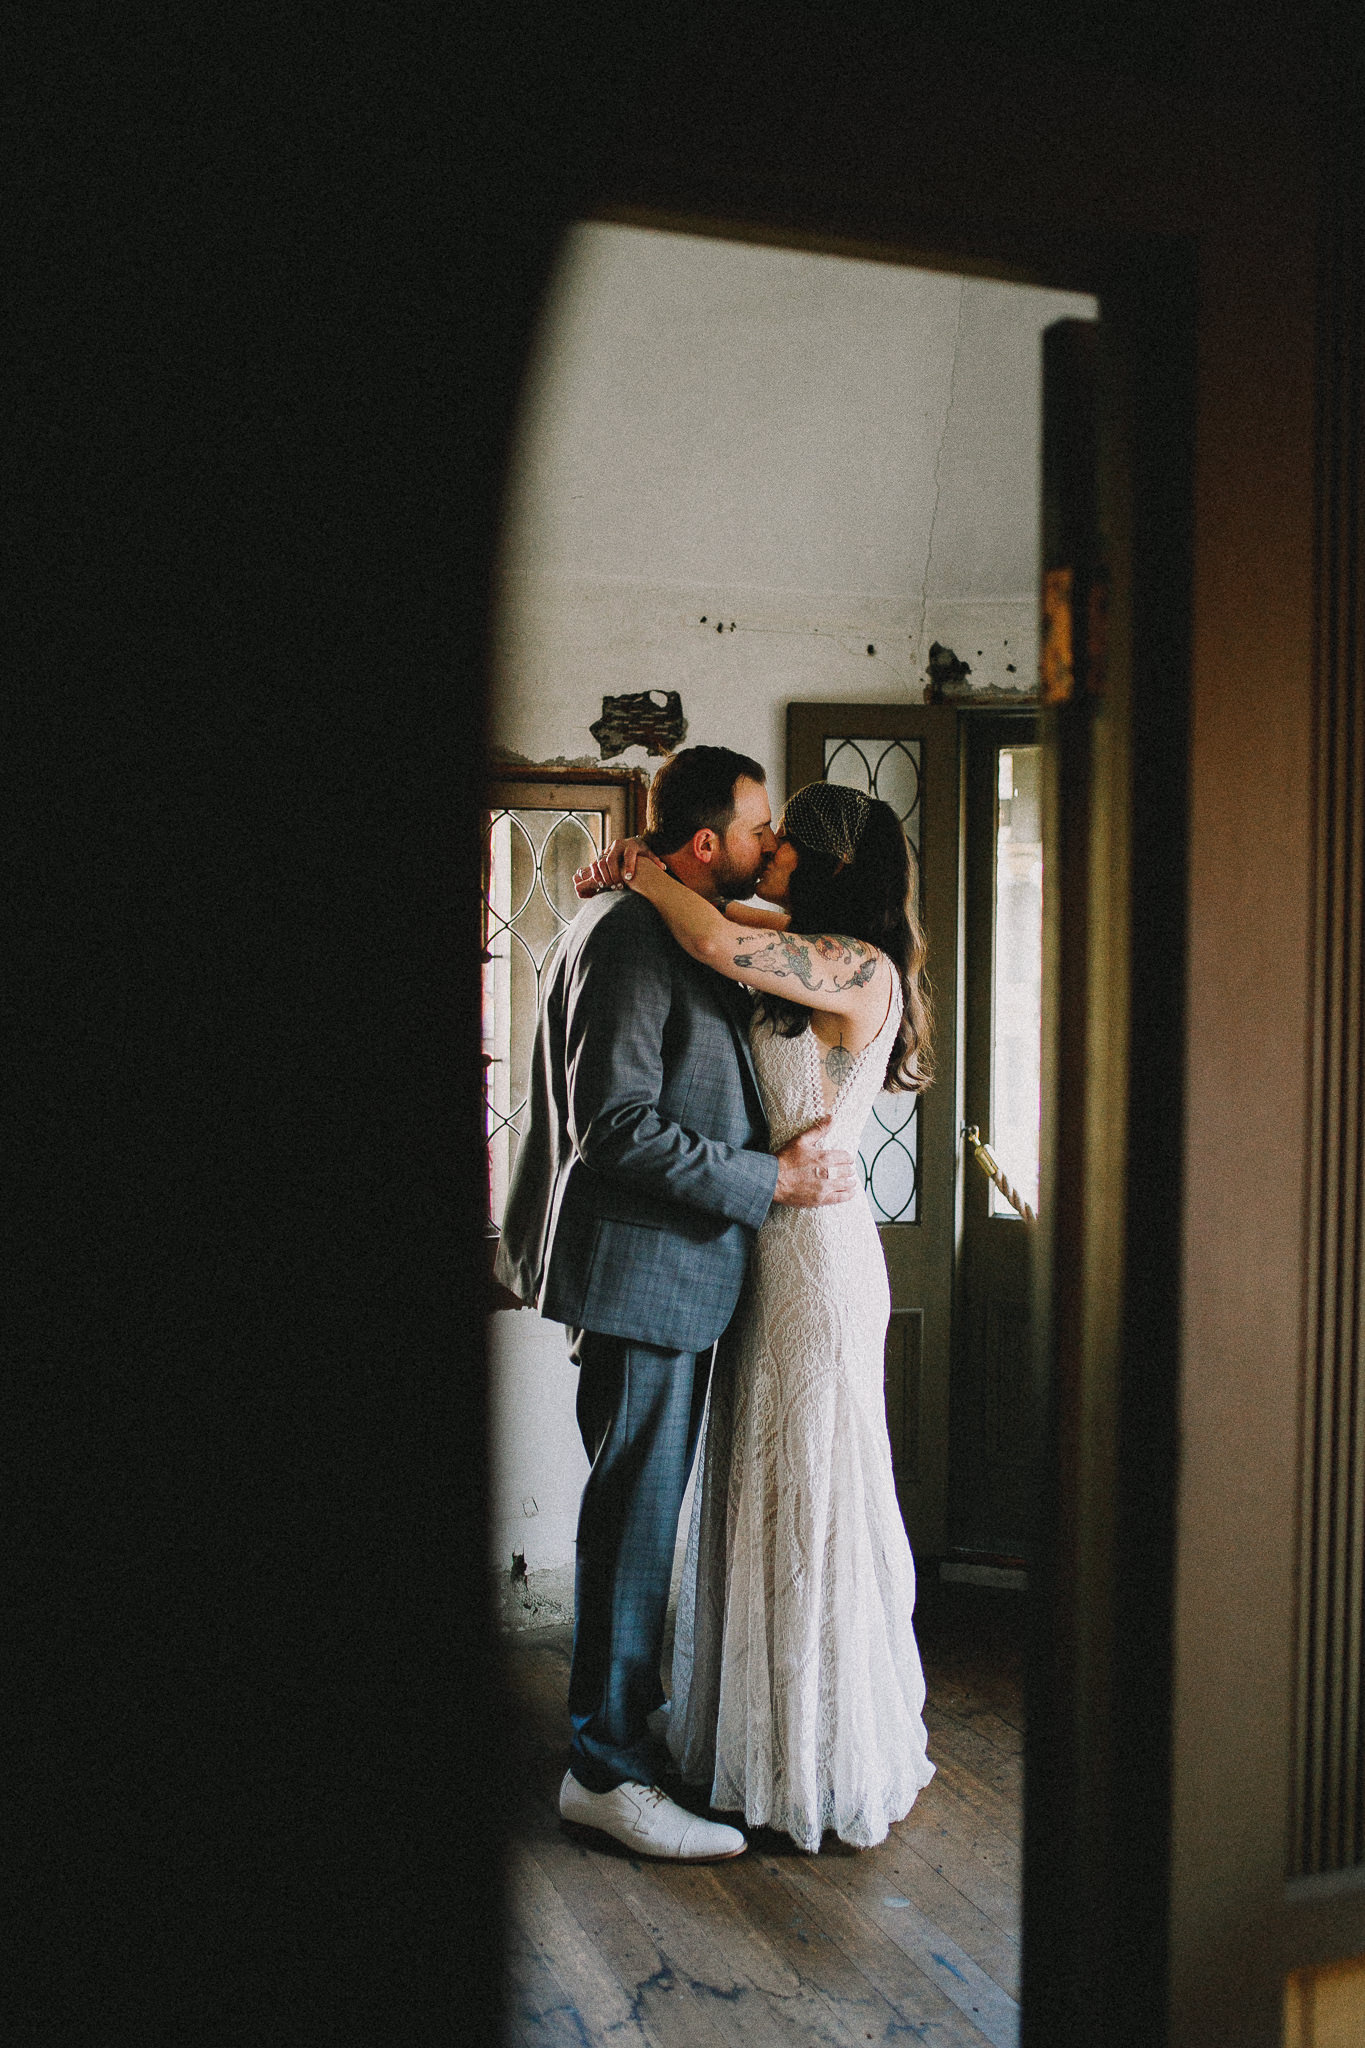 Archer Inspired Photography Sara and Aaron Winchester Mystery House NorCal San Jose California Wedding Photographer-346.jpg